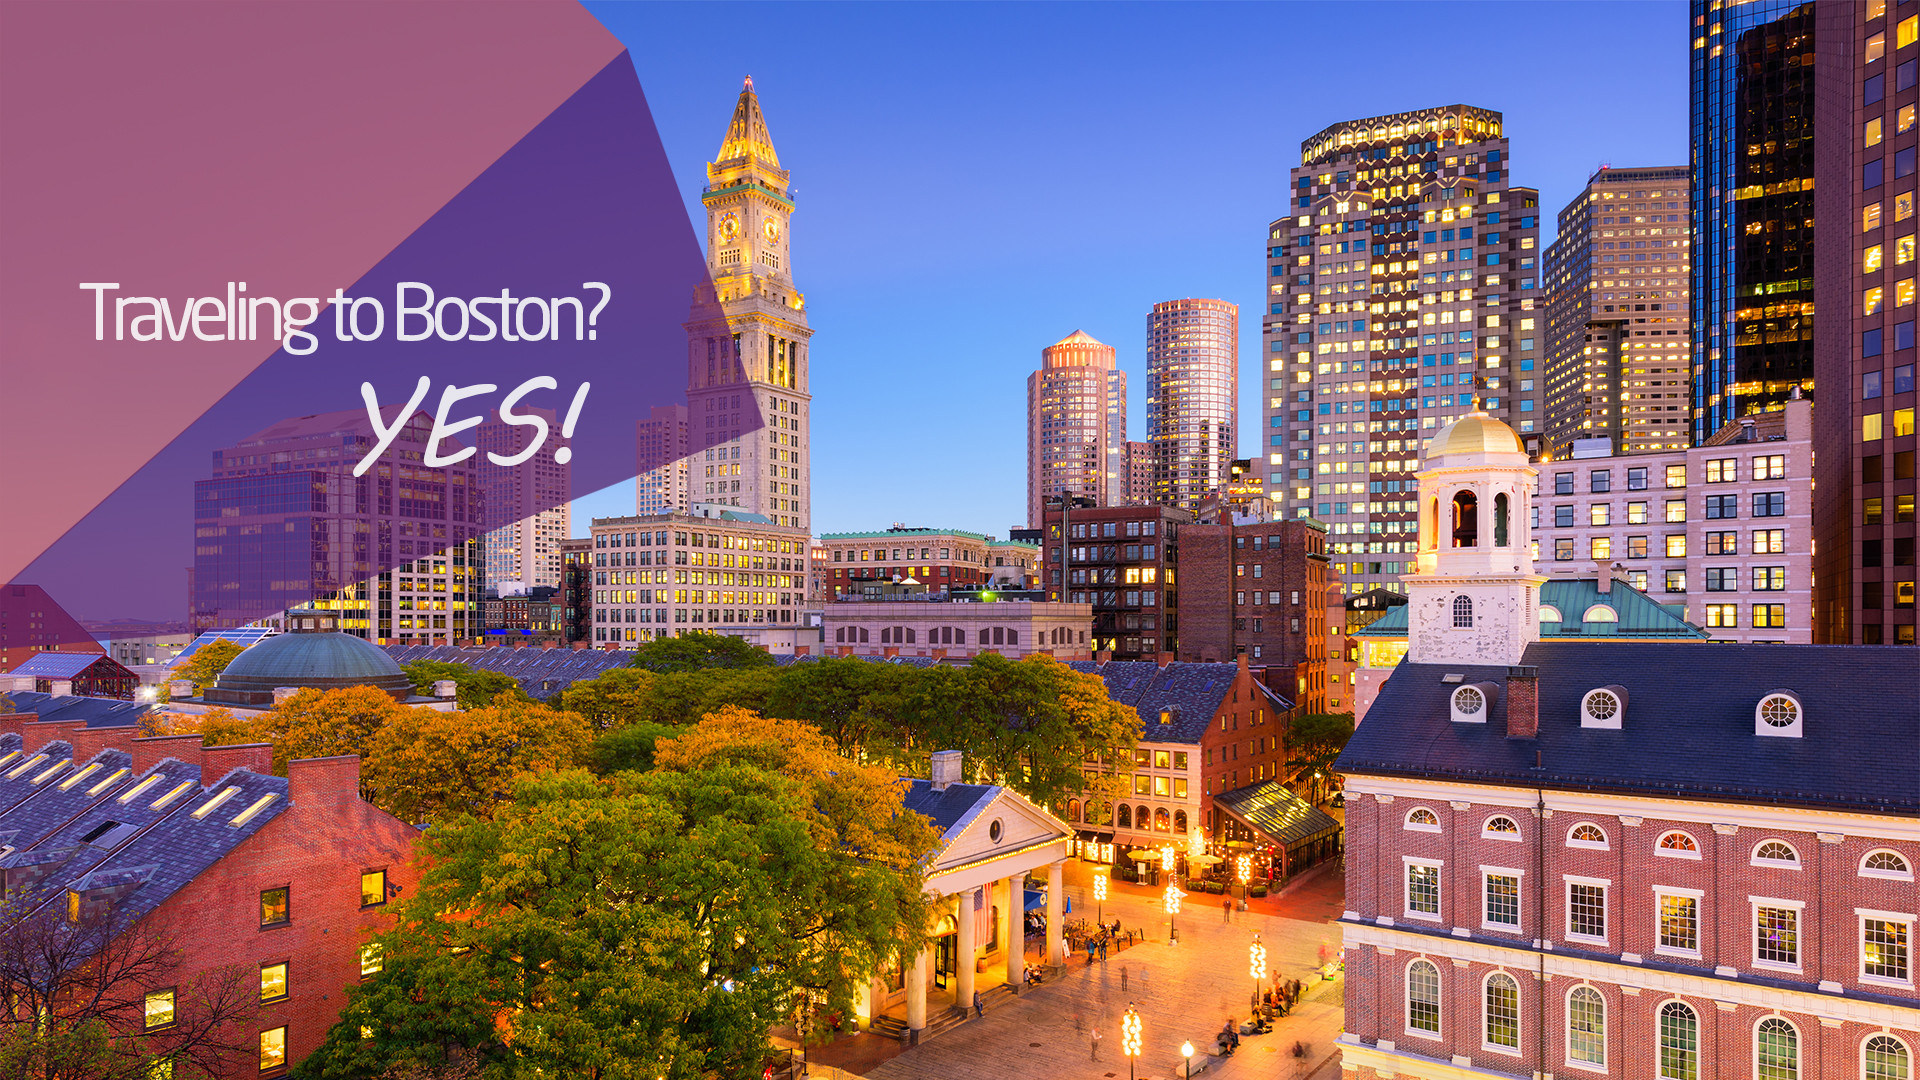 Traveling to Boston? Yes!